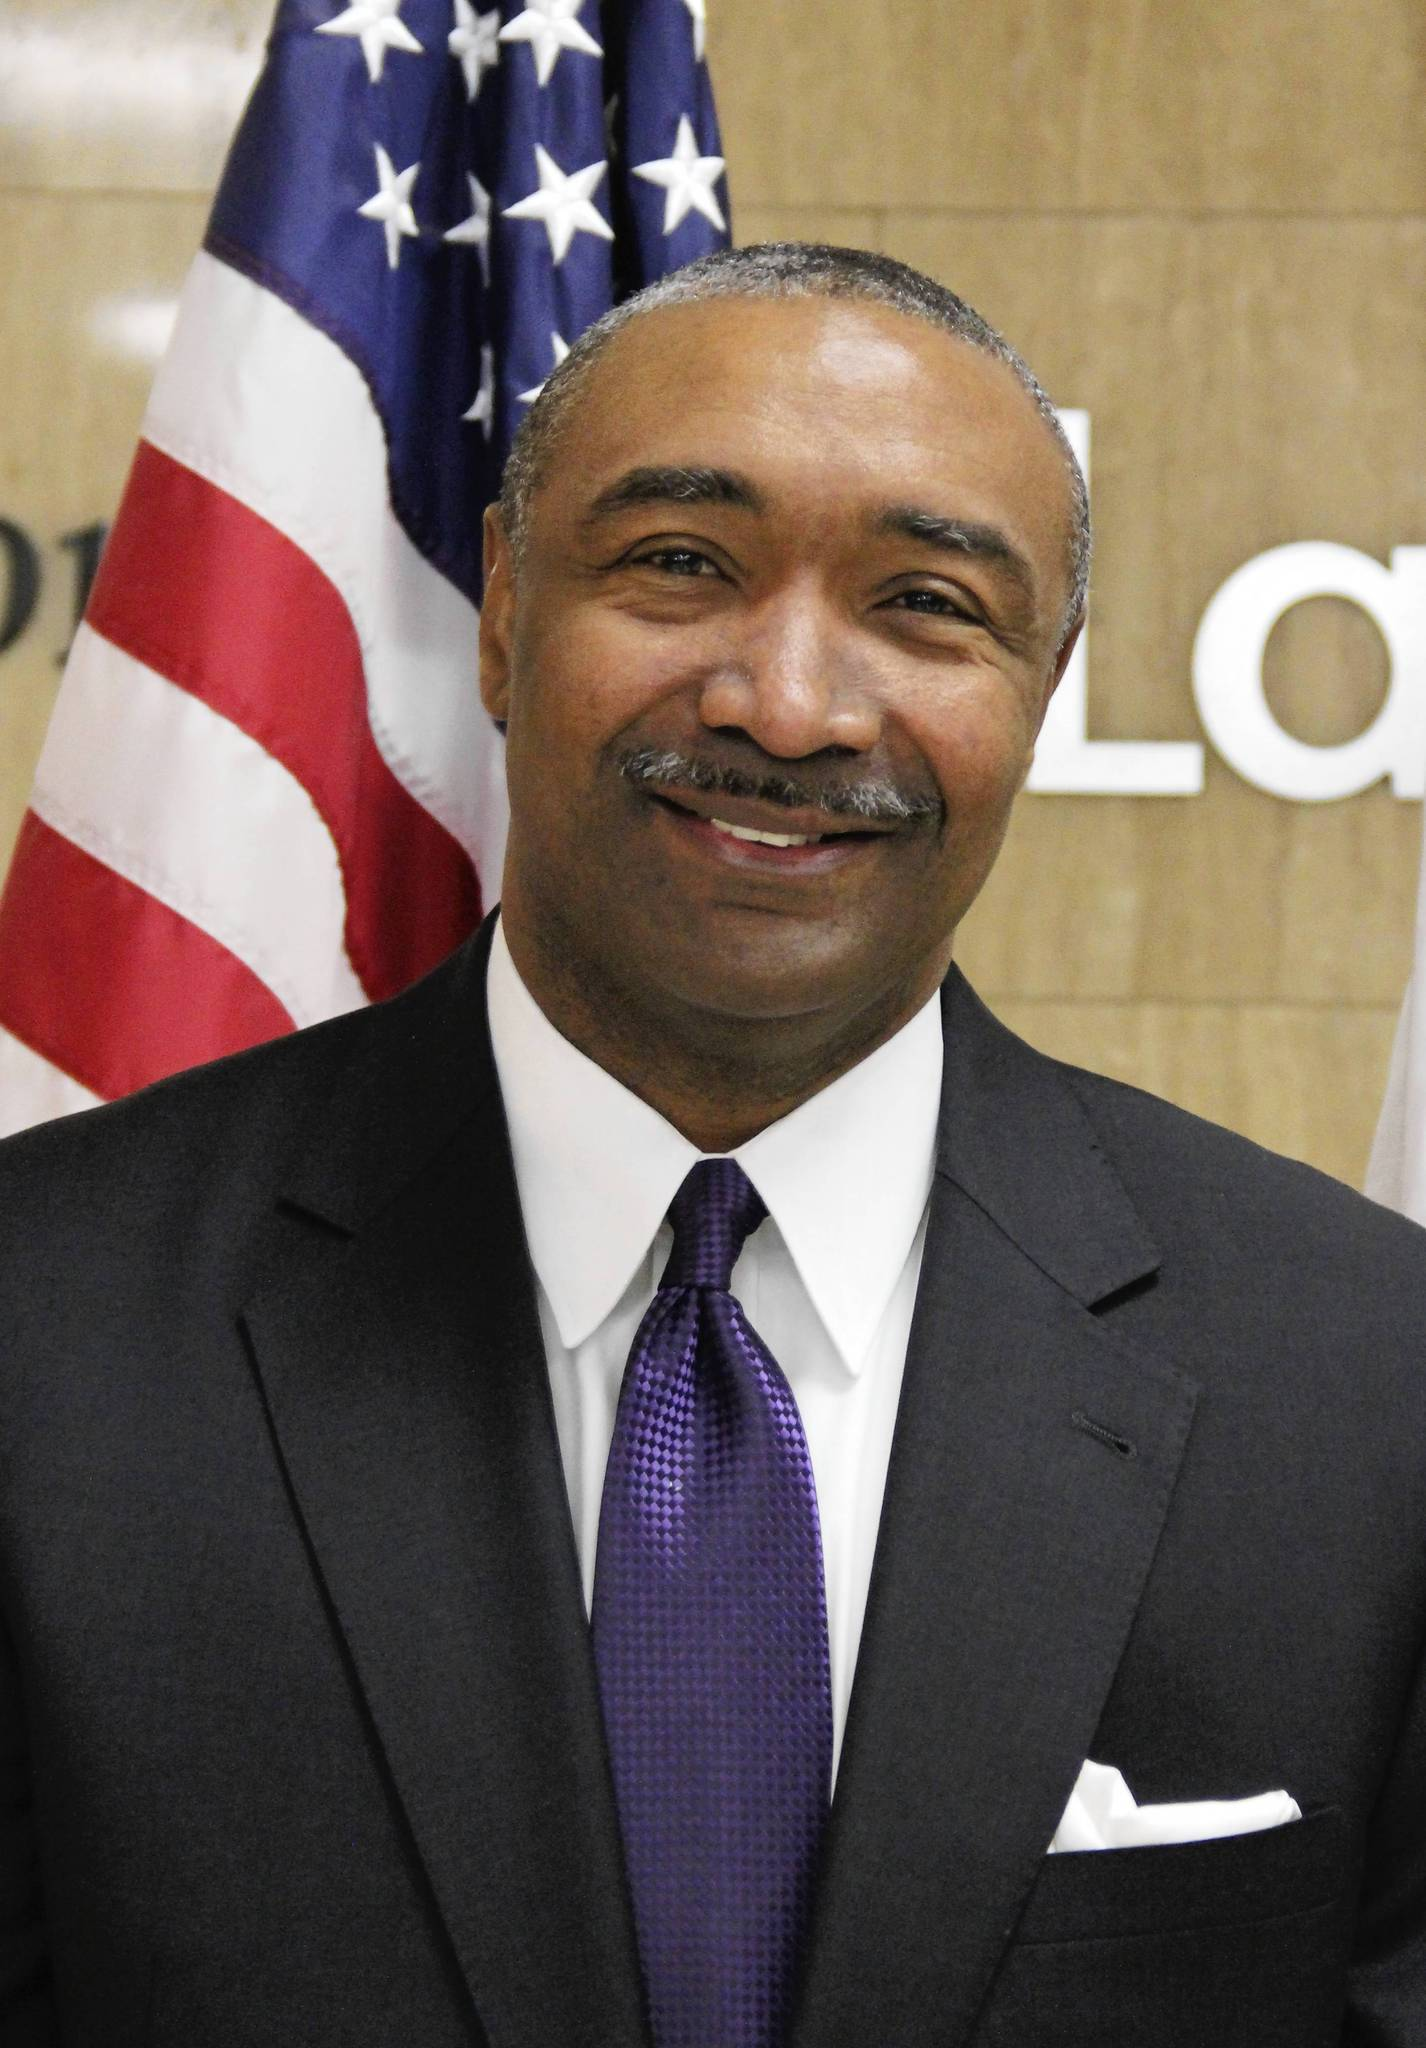 Waukegan City Clerk Artis Yancey died this morning after collapsing at his home, the city's mayor said.